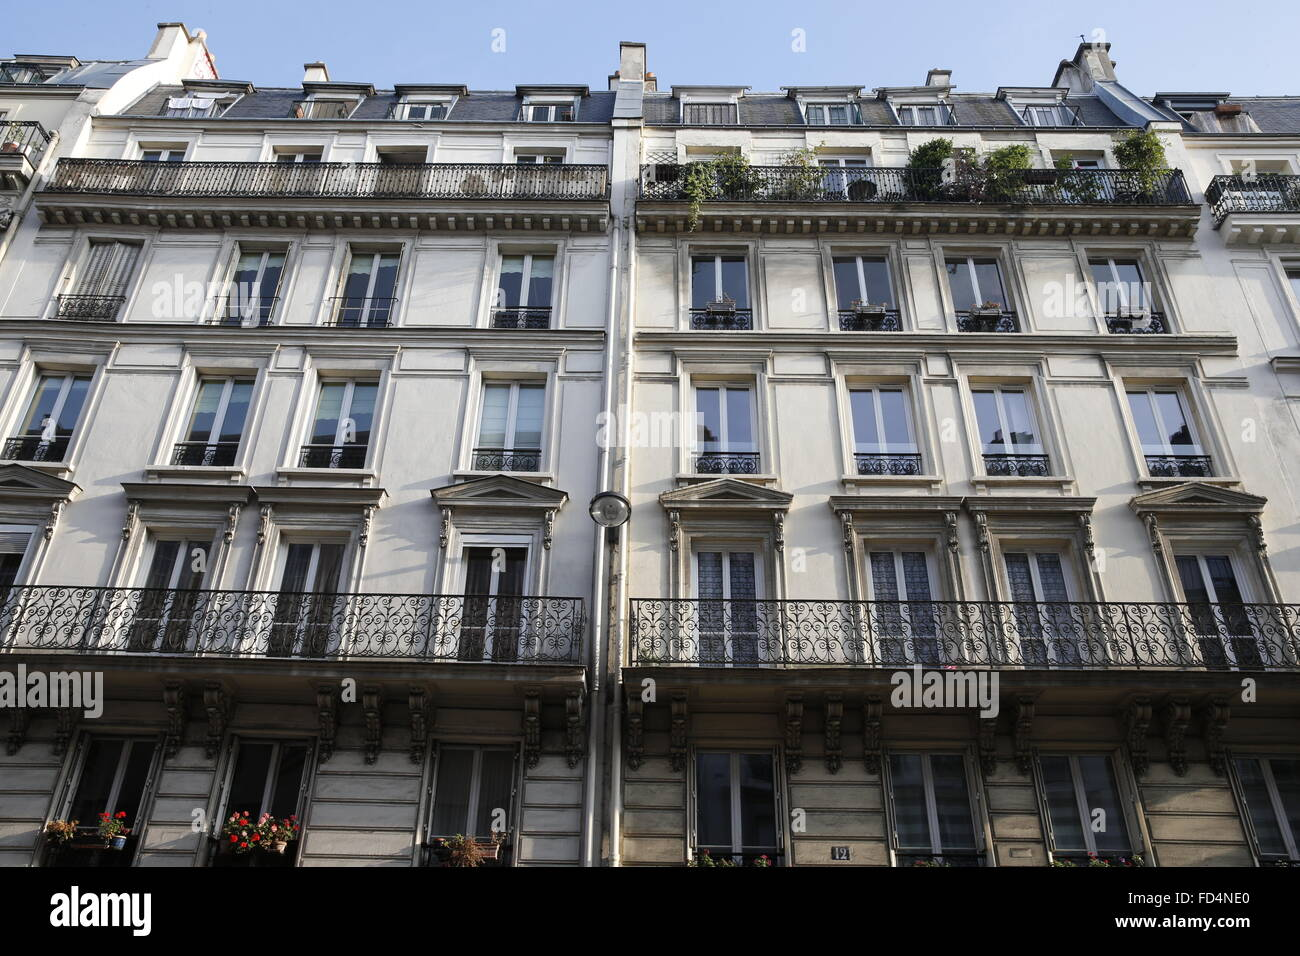 Paris building faade. - Stock Image